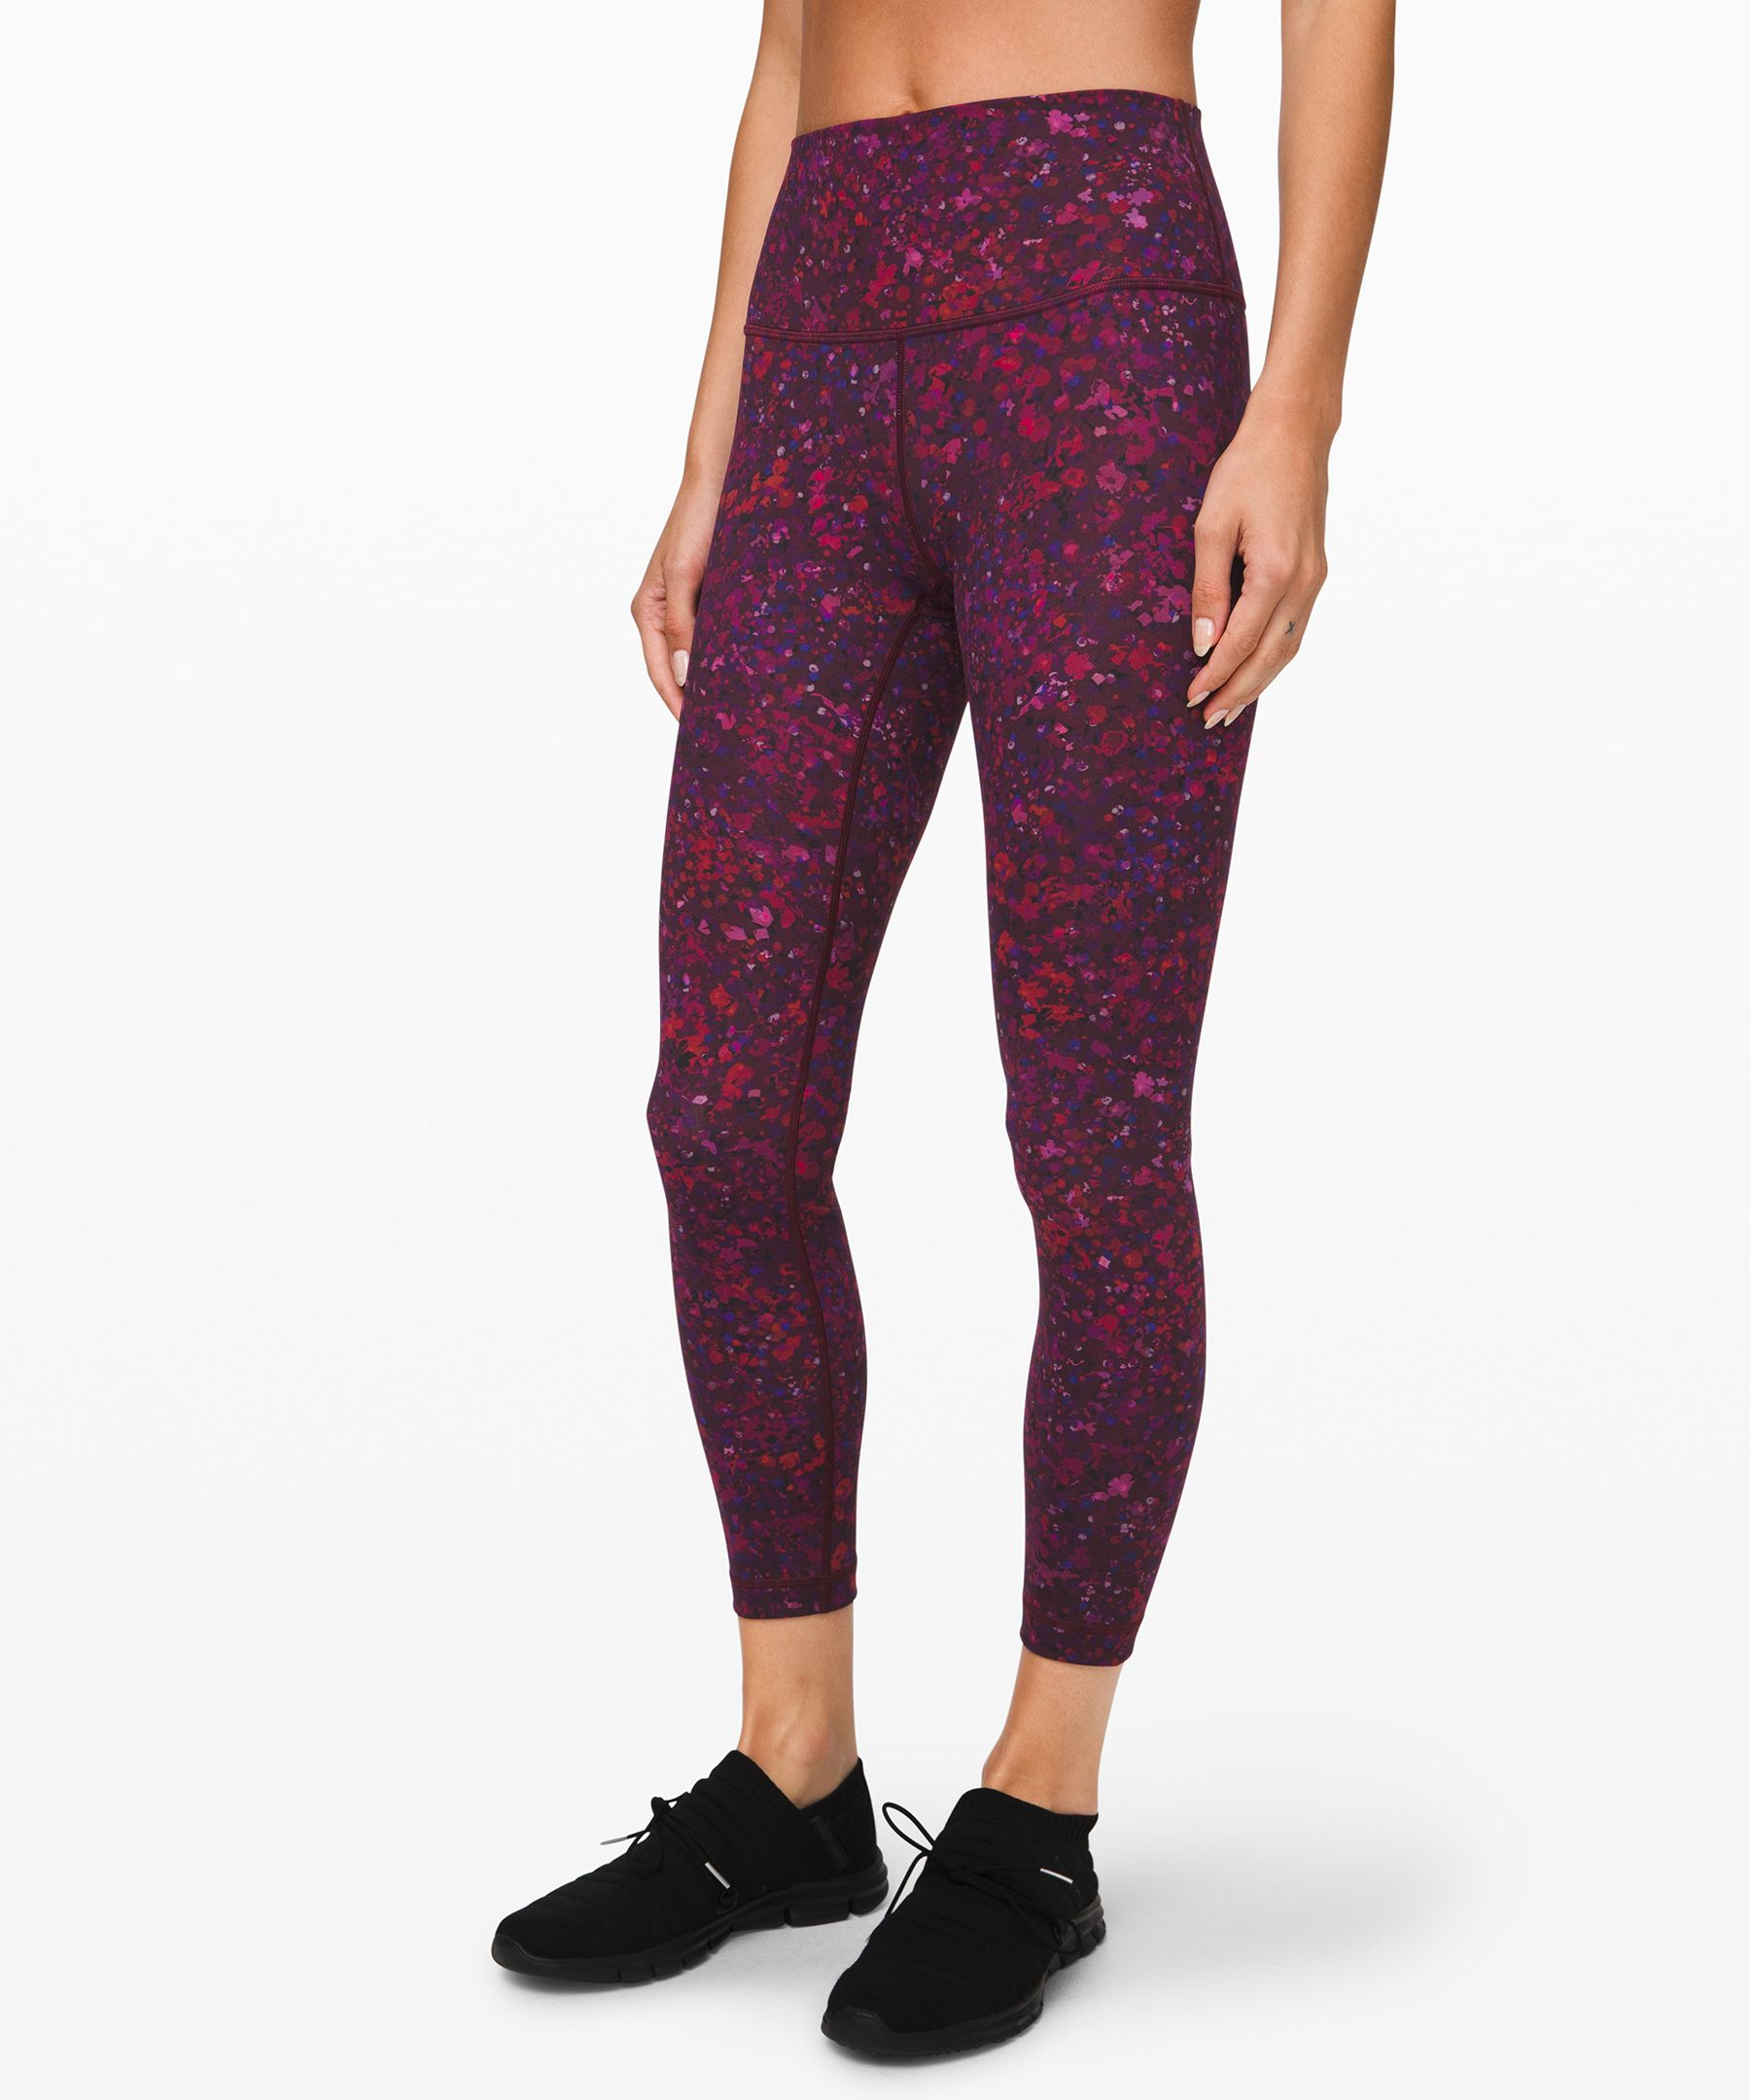 Wunder Under High-Rise Tight 25 Full-On Luxtreme *Lunar New Year